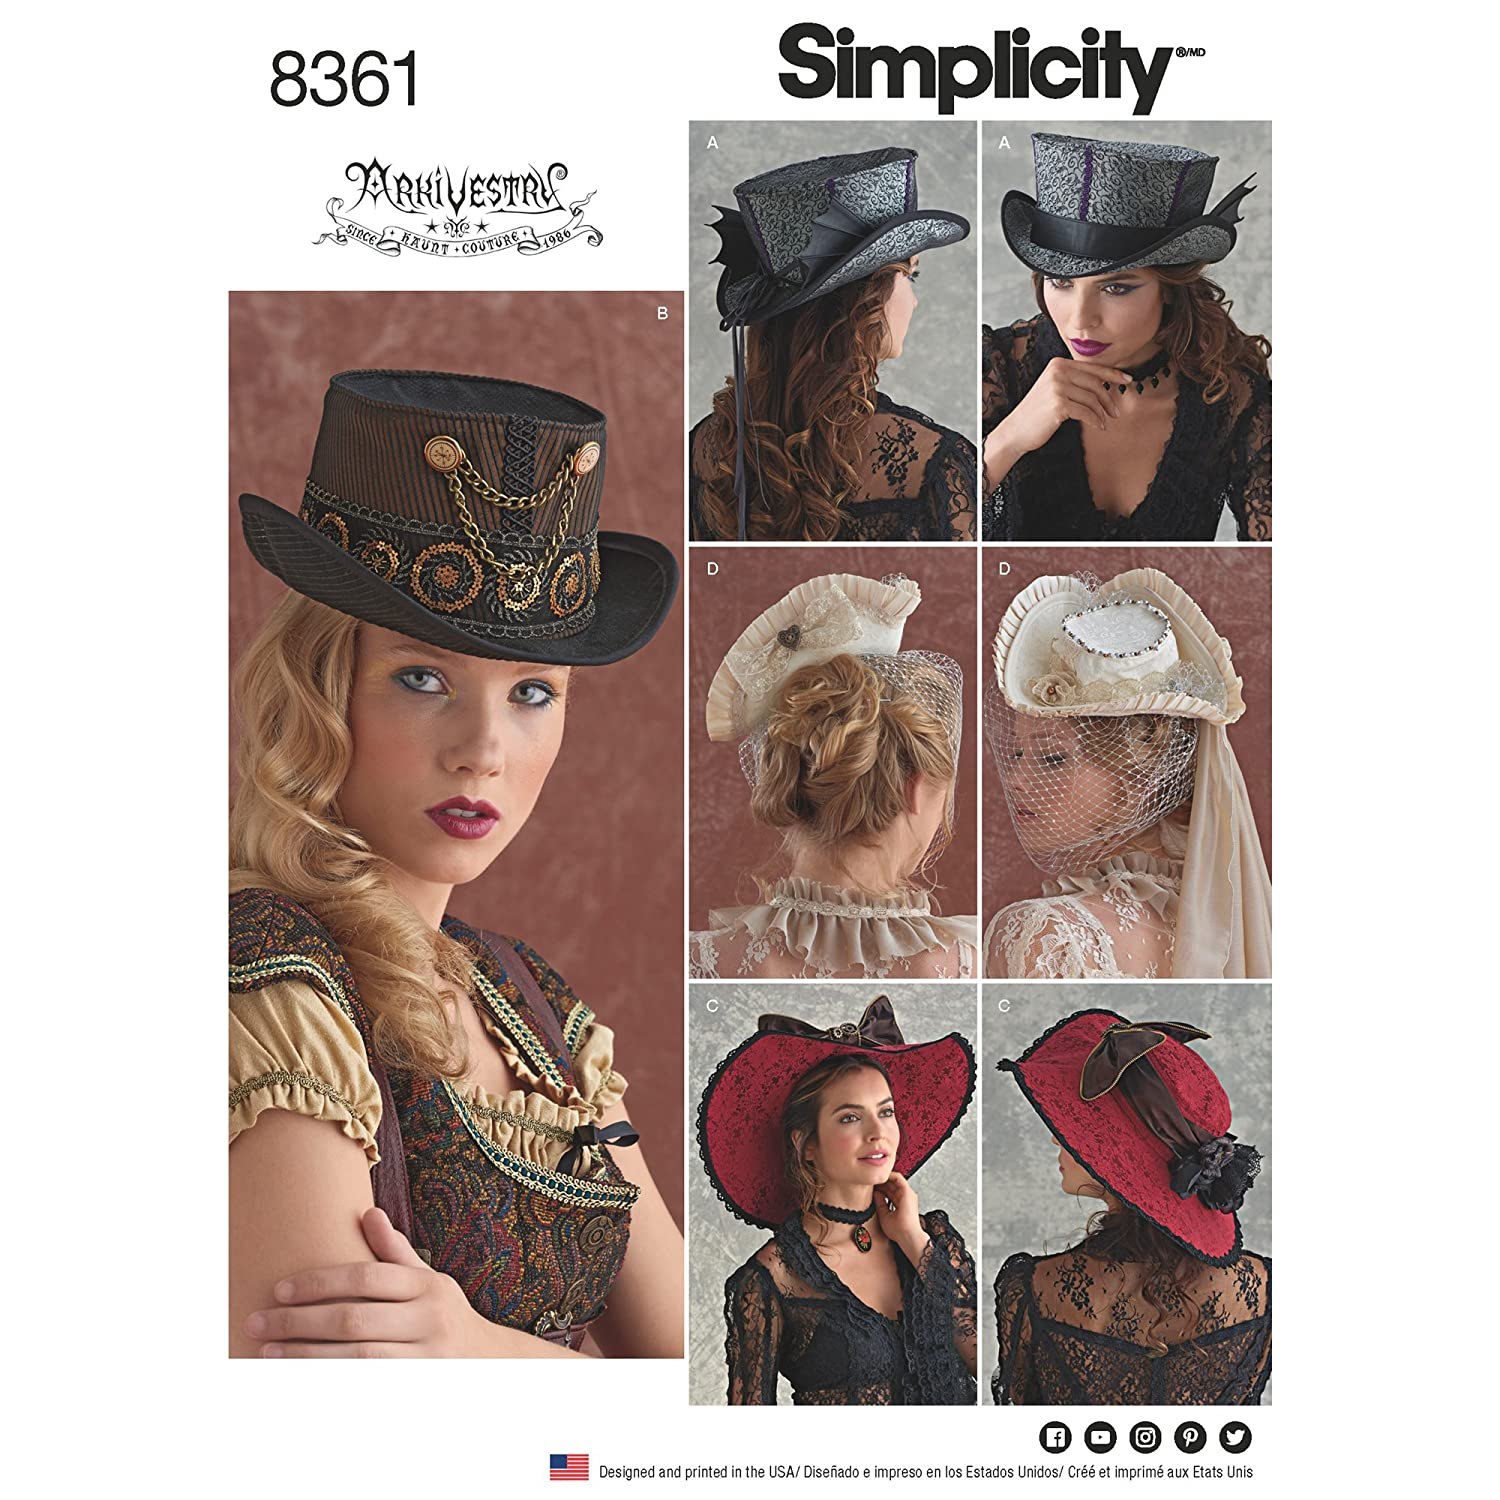 M Paper White 22 x 15 x 1 cm 23 L 22 Simplicity Pattern 8361 Hats in Three Sizes: S 21